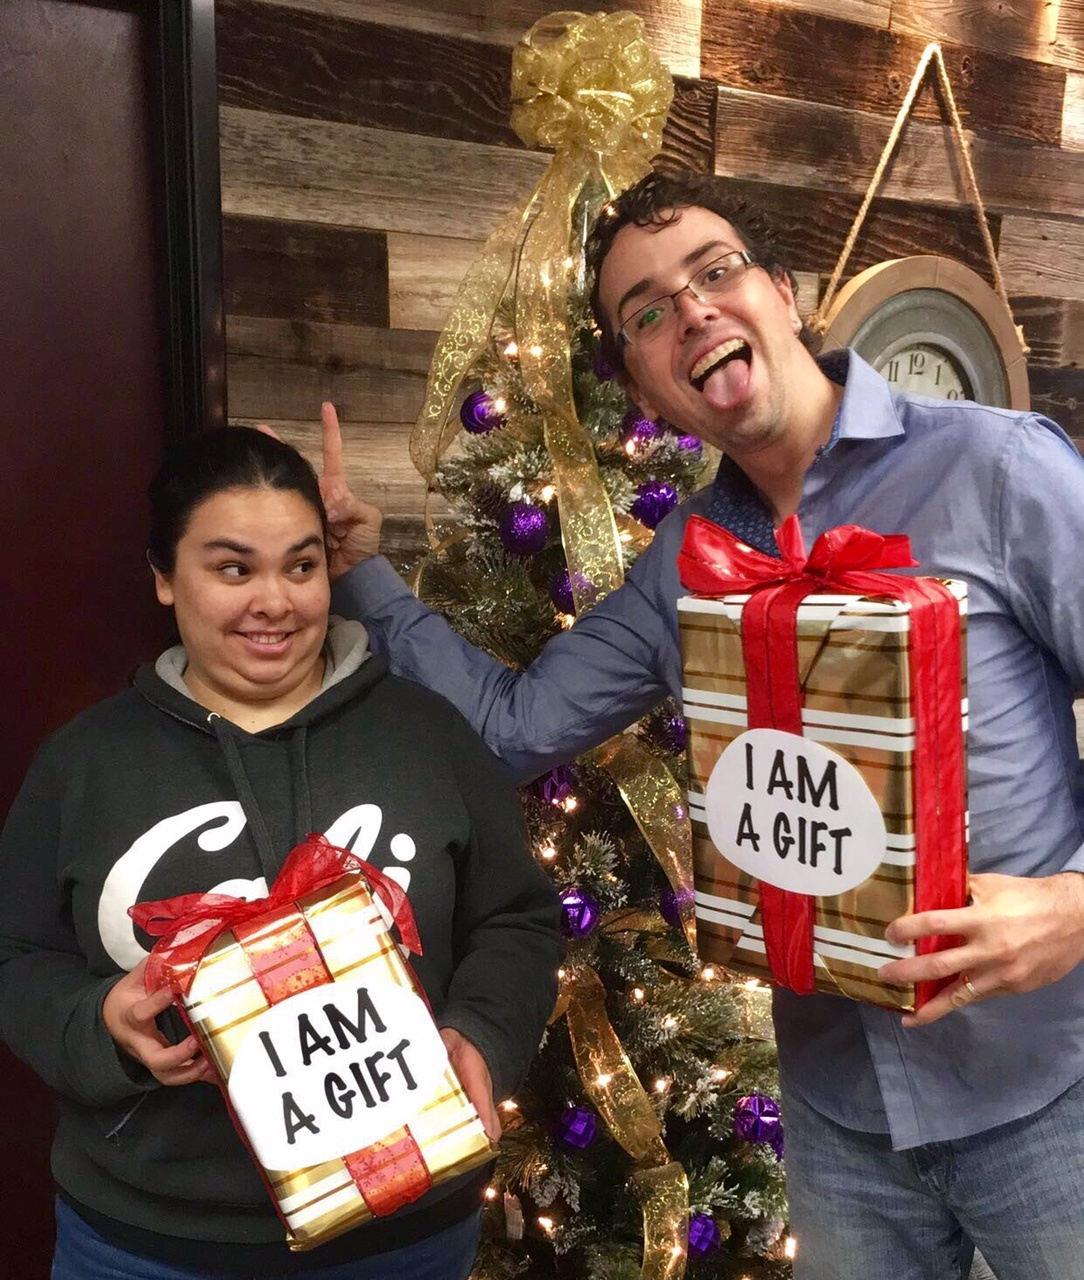 kulture-konnects-creative-team-gets-creative-with-christmas-gift-exchange.jpg